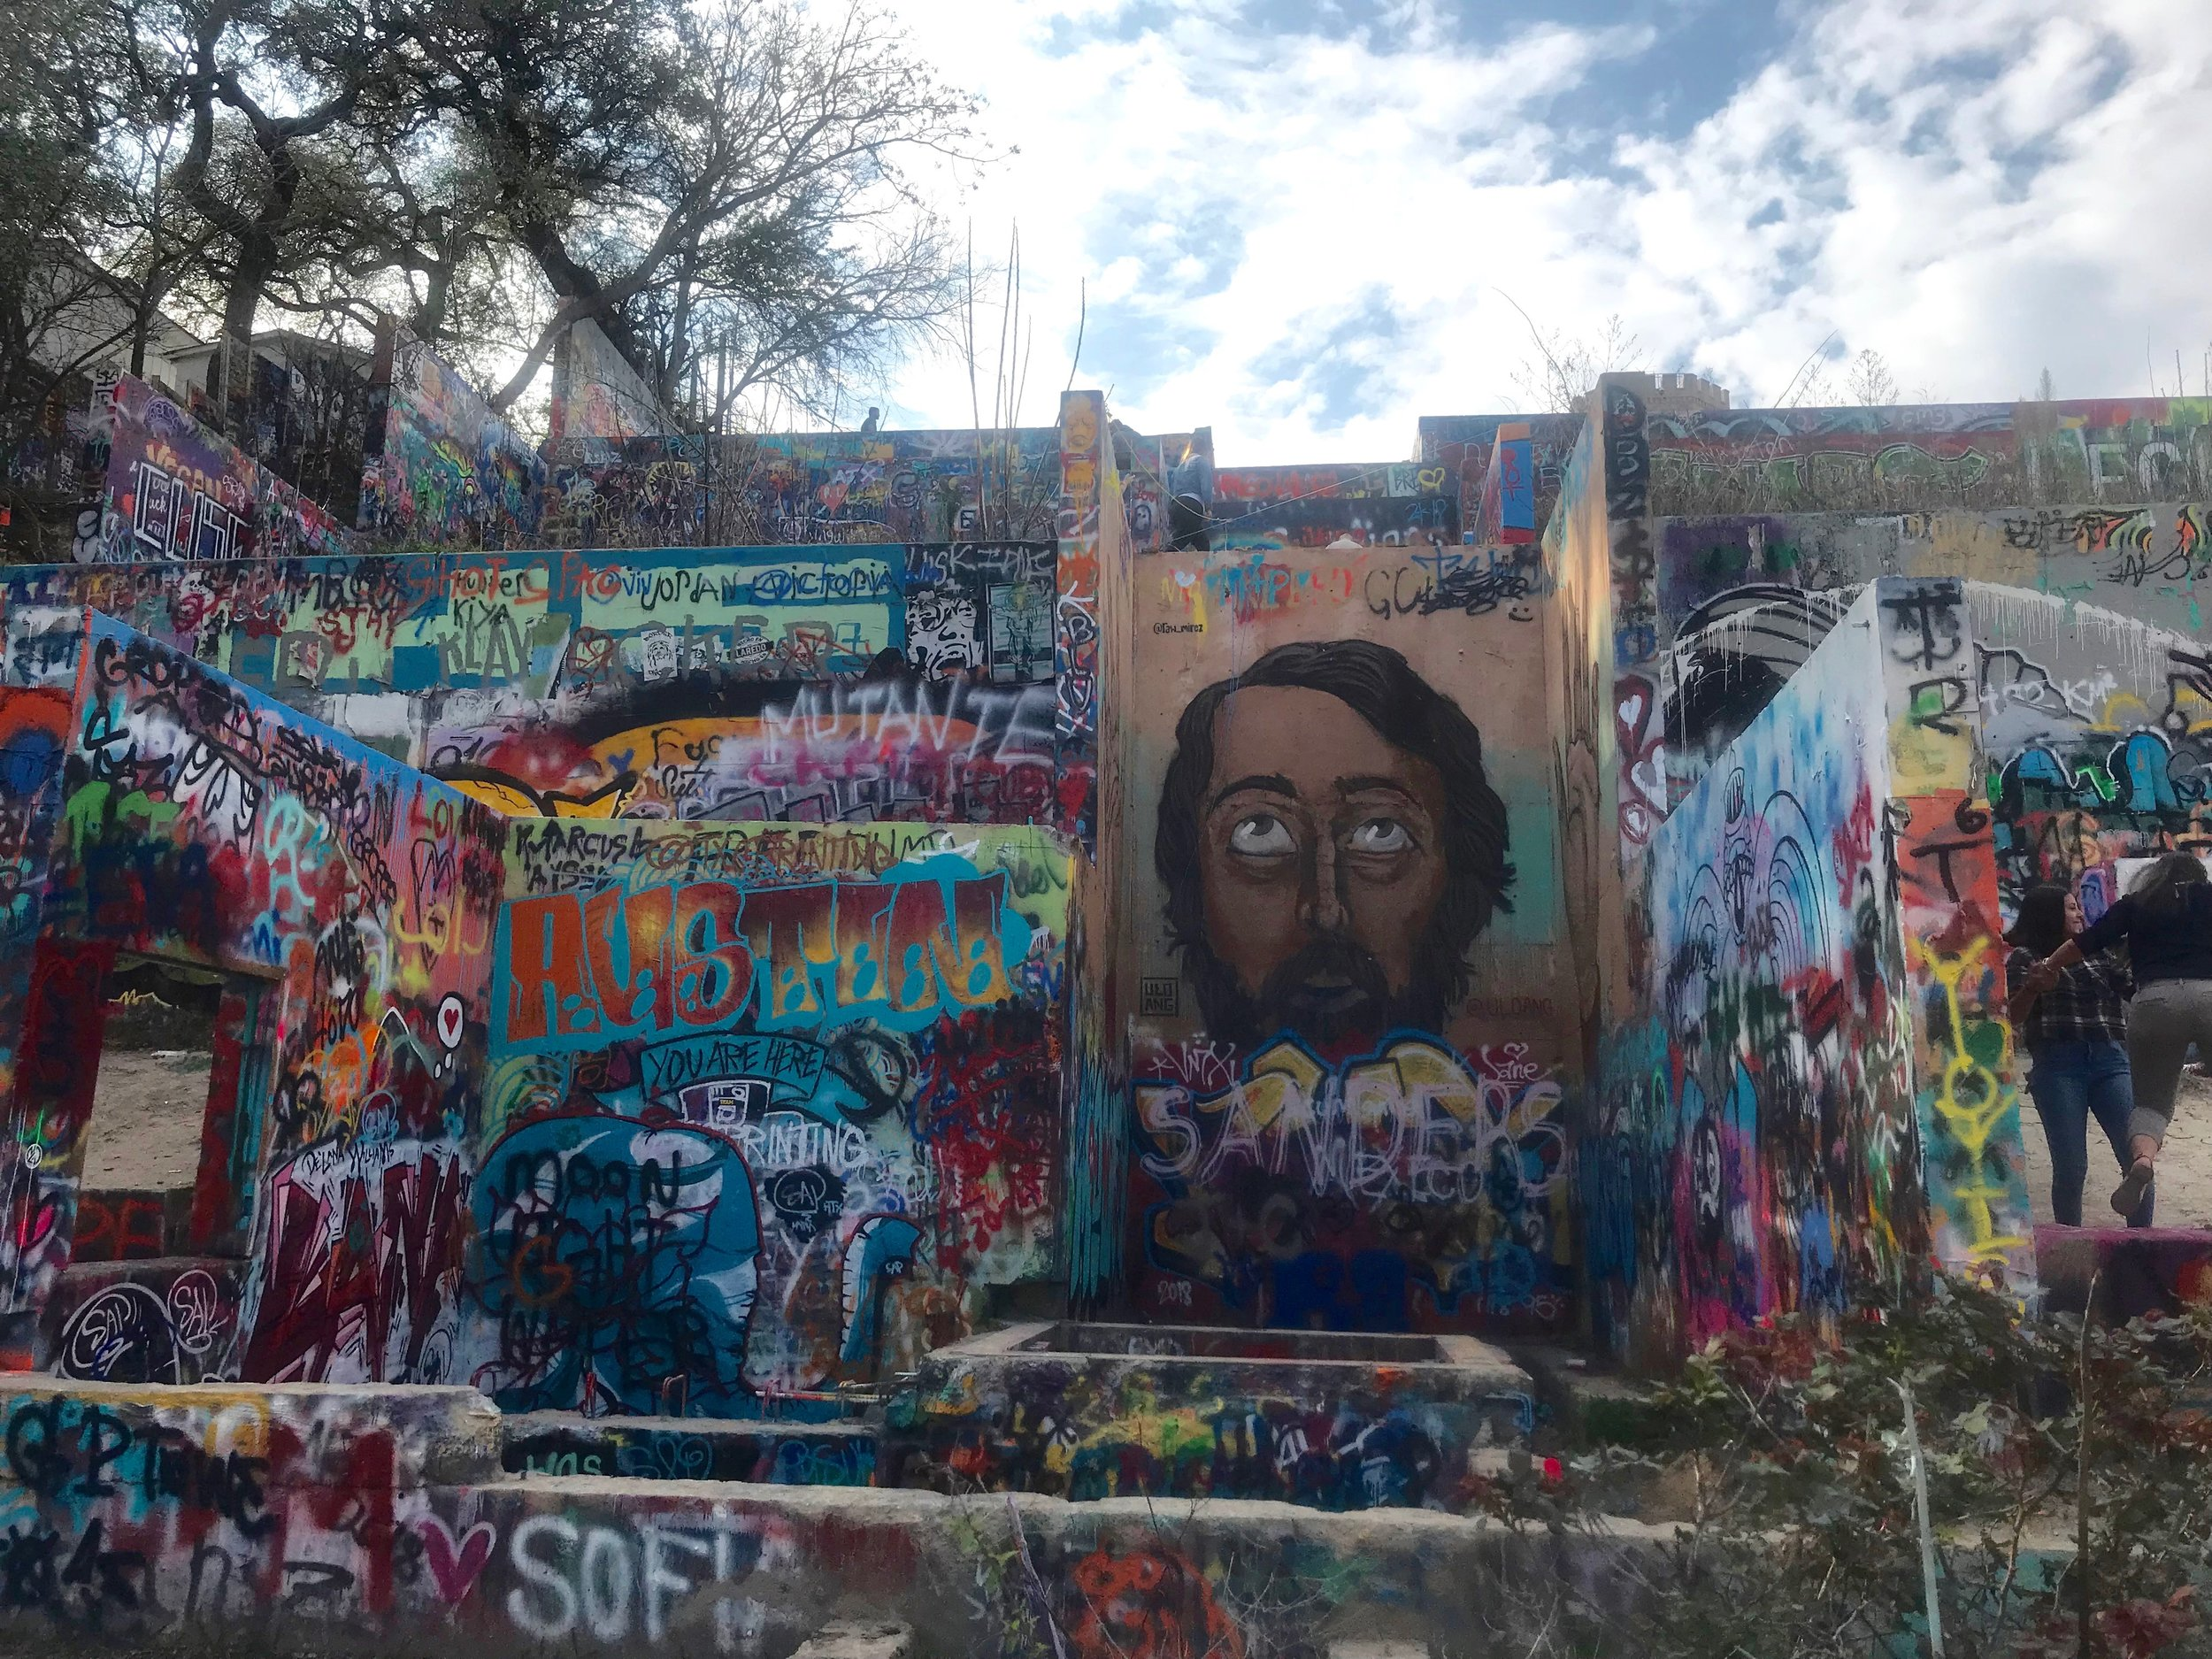 Austin's Graffiti Park - officially known as the Hope Outdoor Gallery - invites people to express themselves with spray paint.